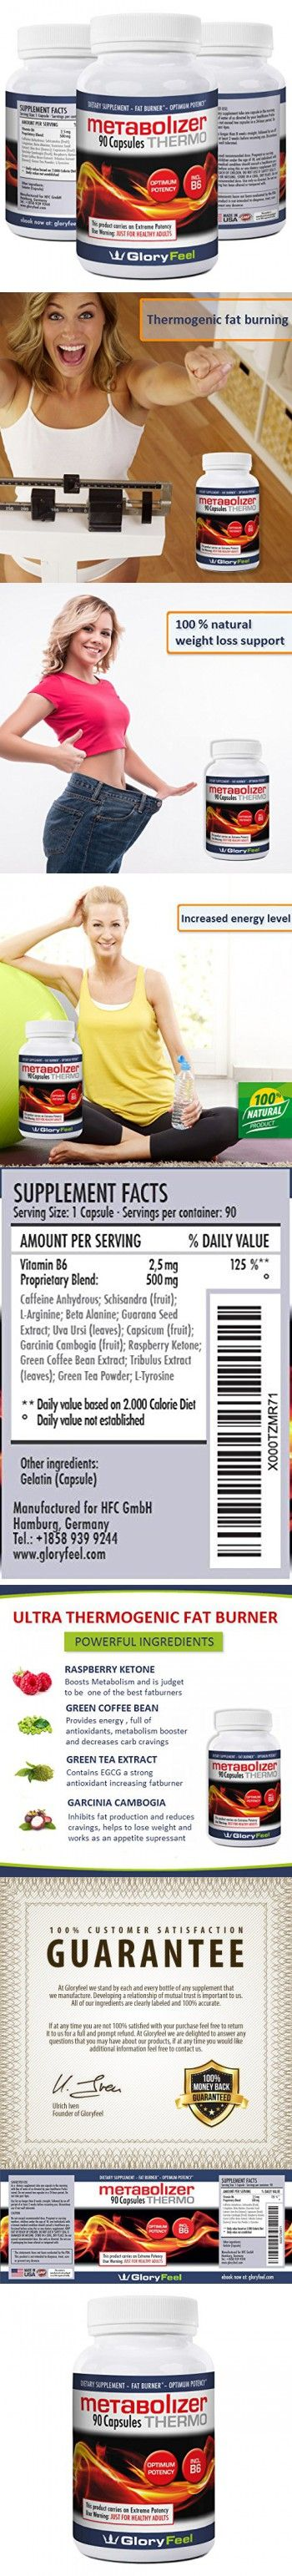 Gloryfeel METABOLISM BOOSTER Thermogenic Fat Burner Weight Loss Pills Diet Pills with Green Tea Raspberry Keton to lose weight Vitamin B6 to Increase Energy 90 Capsules